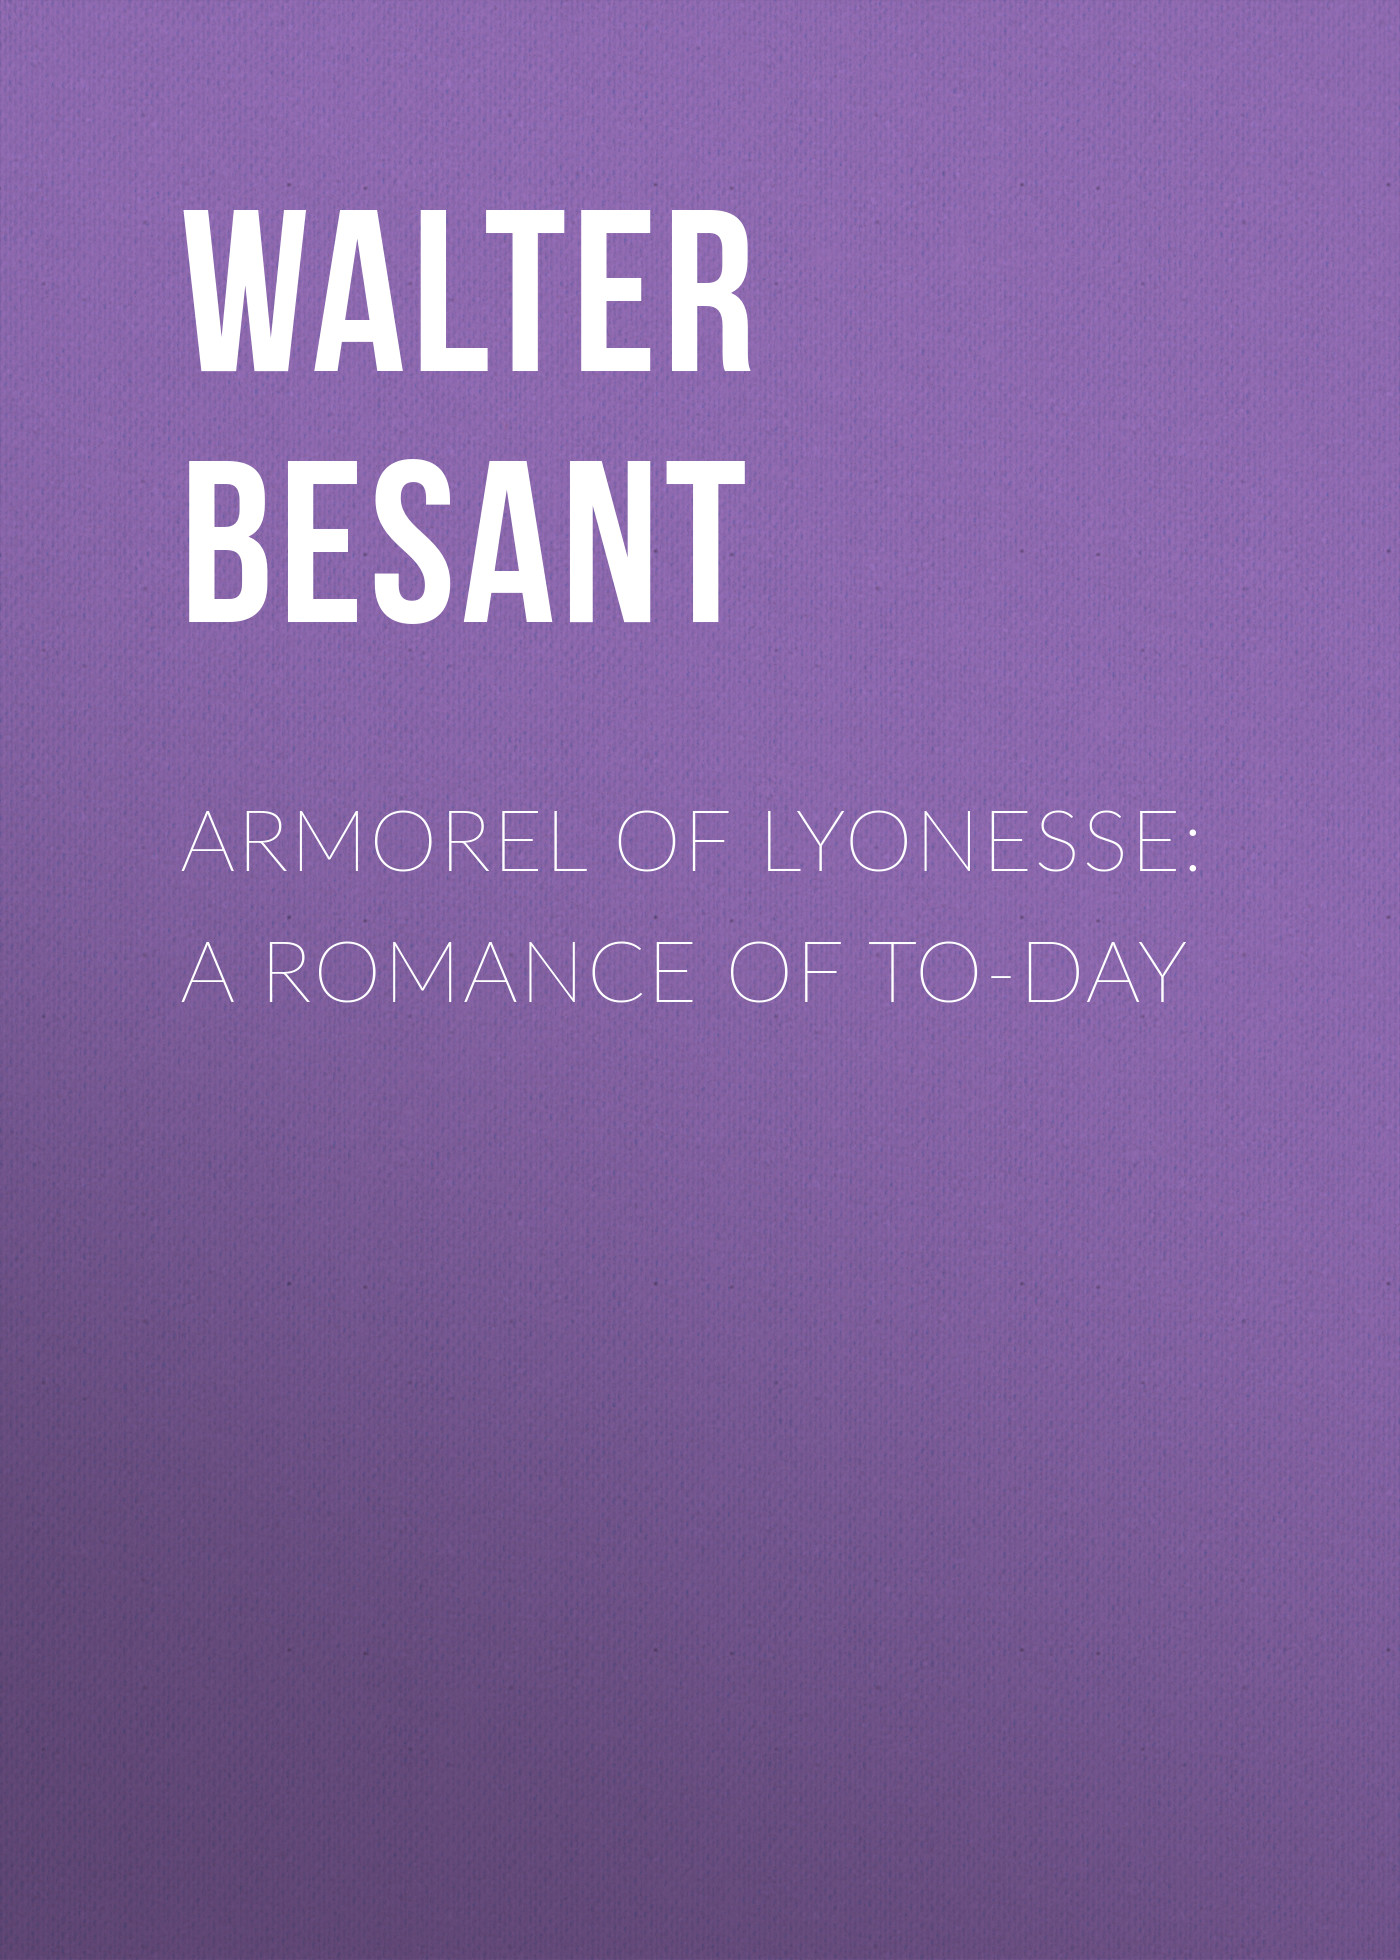 Walter Besant Armorel of Lyonesse: A Romance of To-day walter besant london